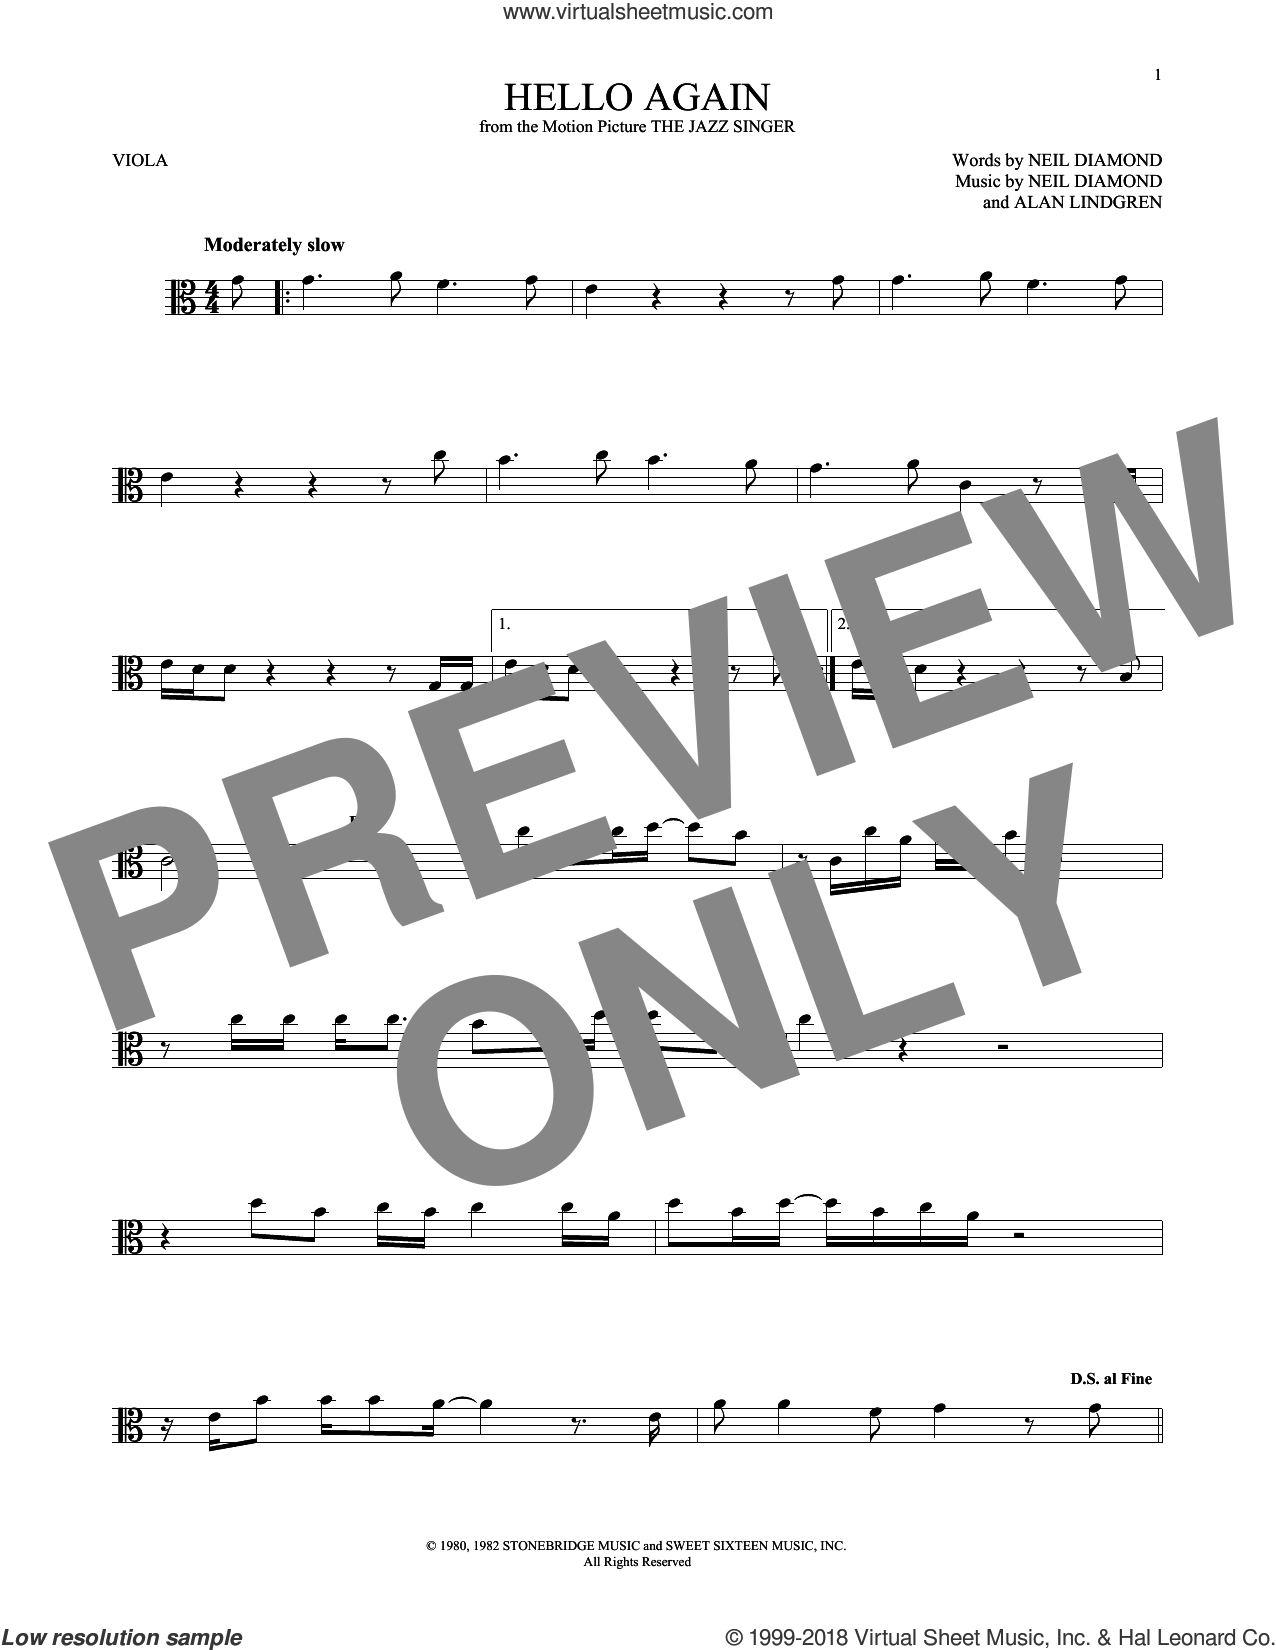 Hello Again sheet music for viola solo by Neil Diamond and Alan Lindgren, intermediate skill level